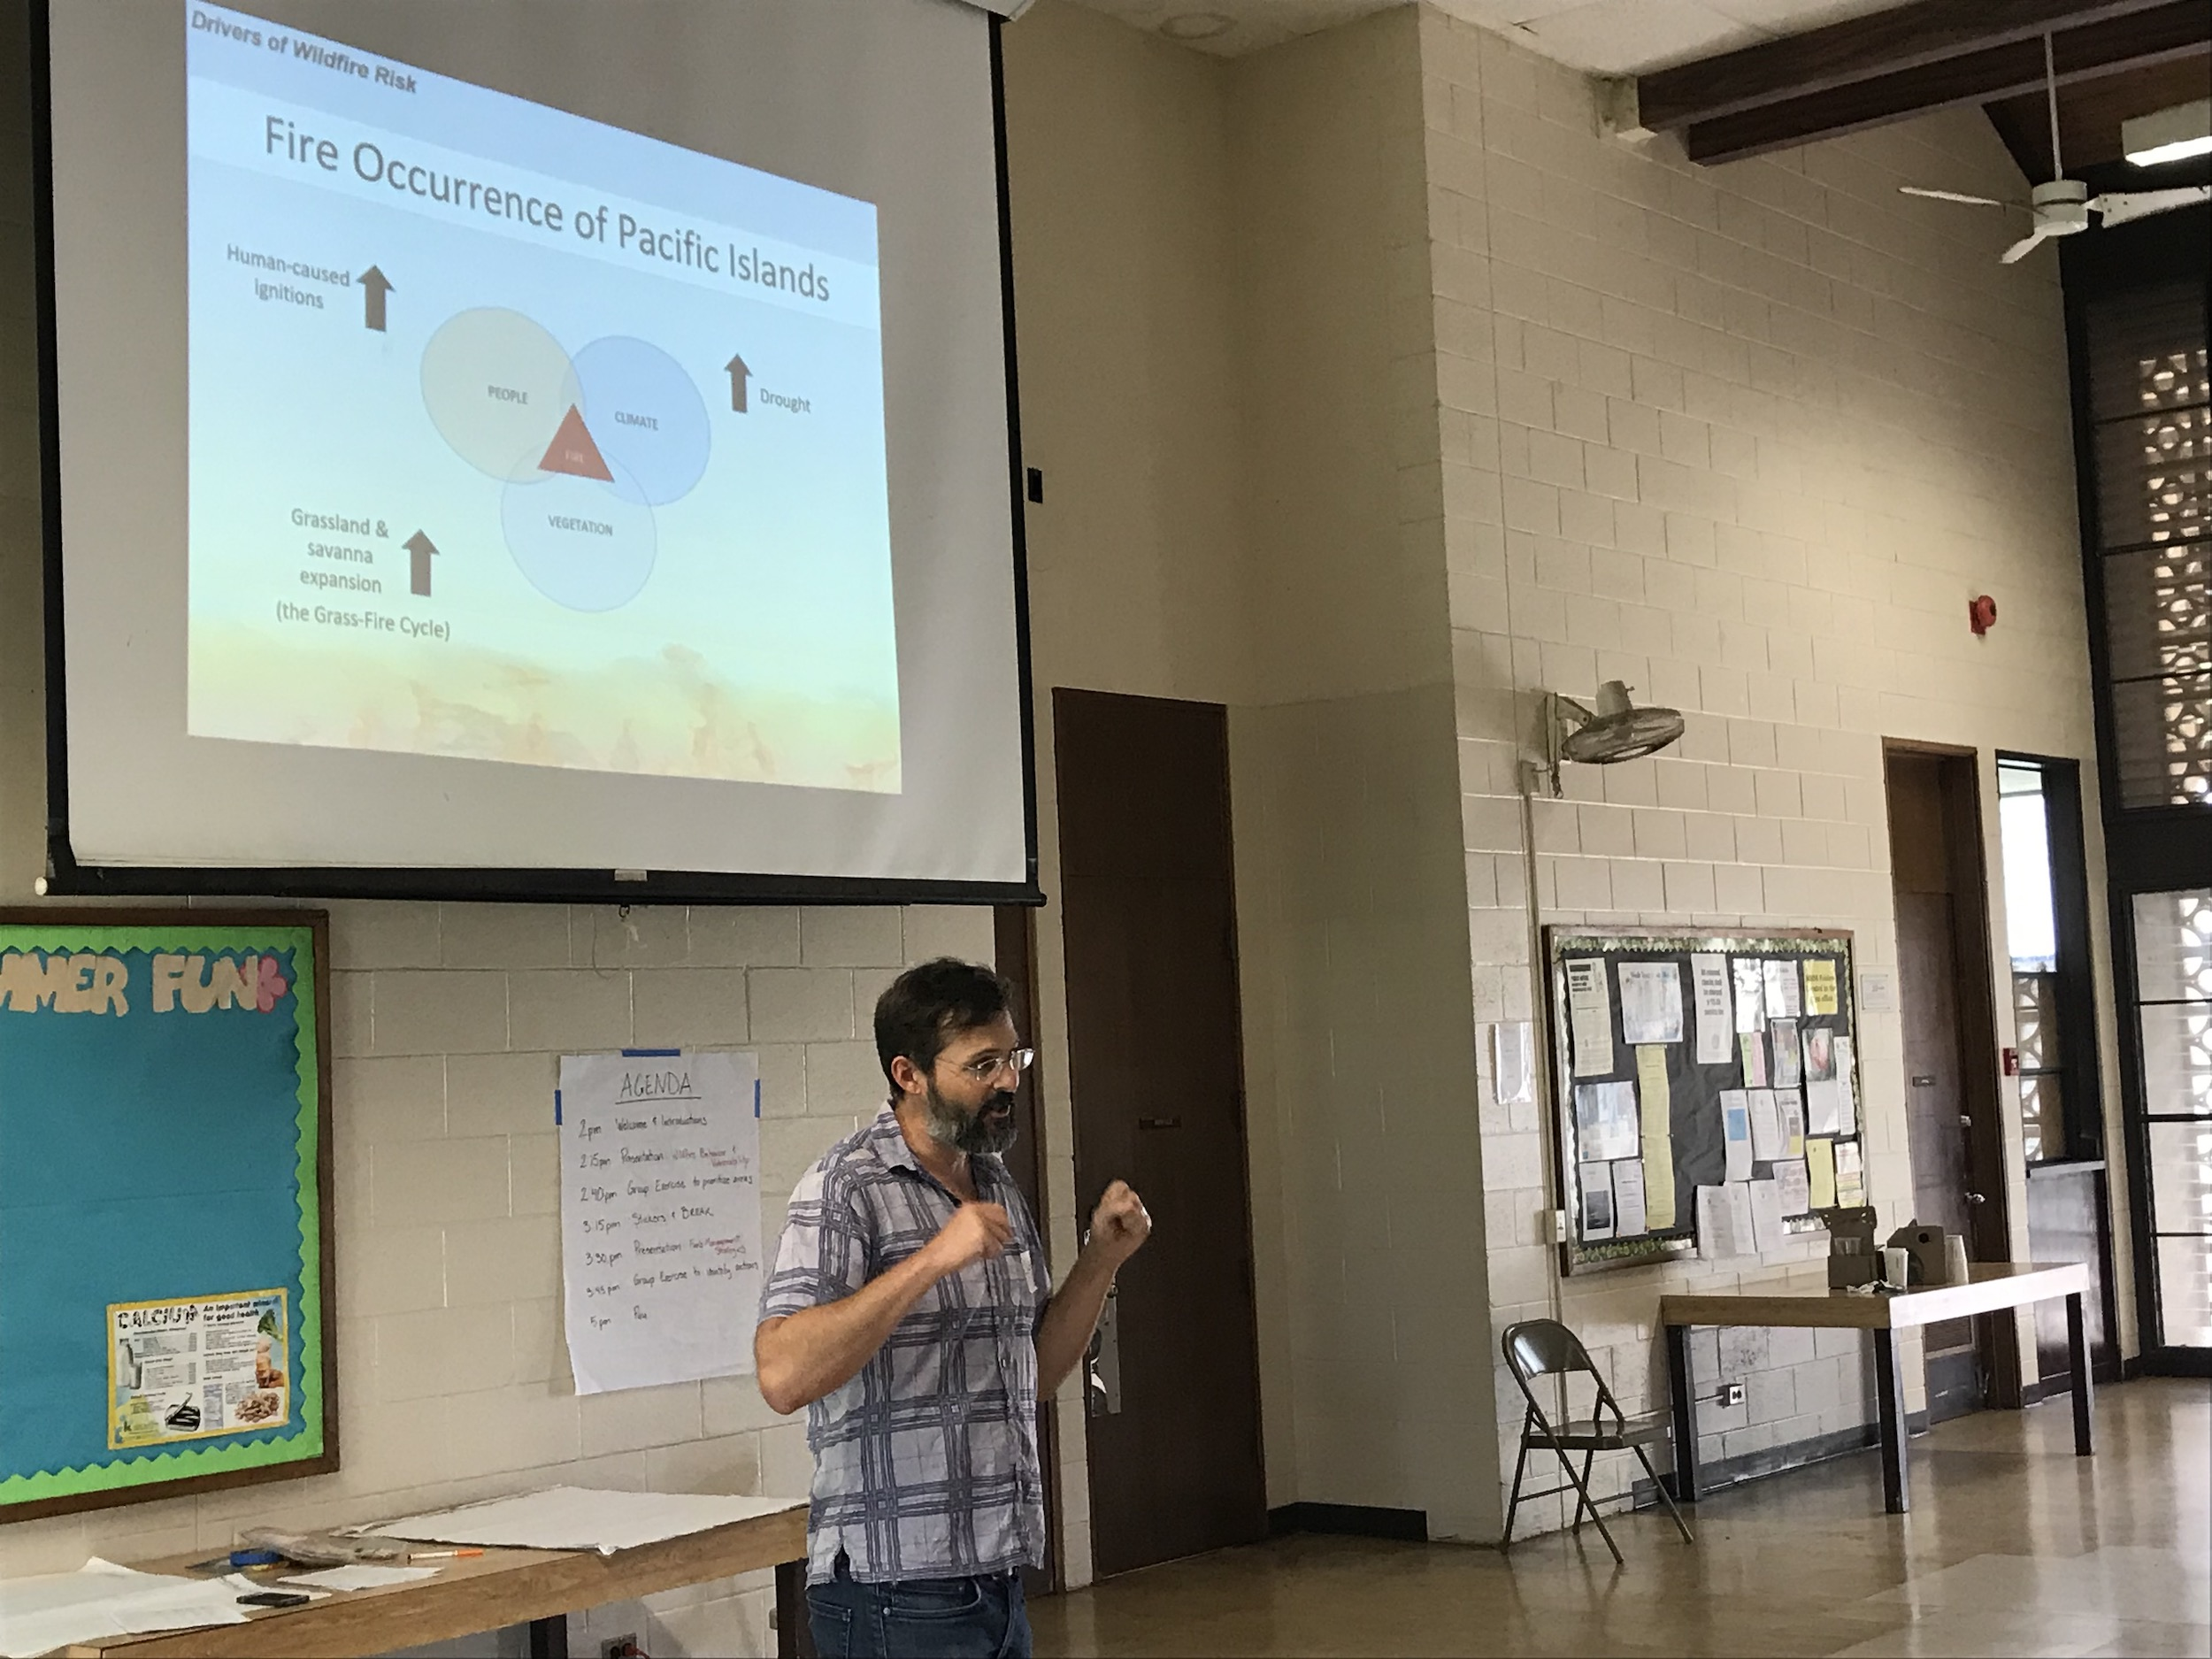 Oahu Vegetative Fuels Management Collaborative Action Planning Workshop_2_19_2019_5.jpg